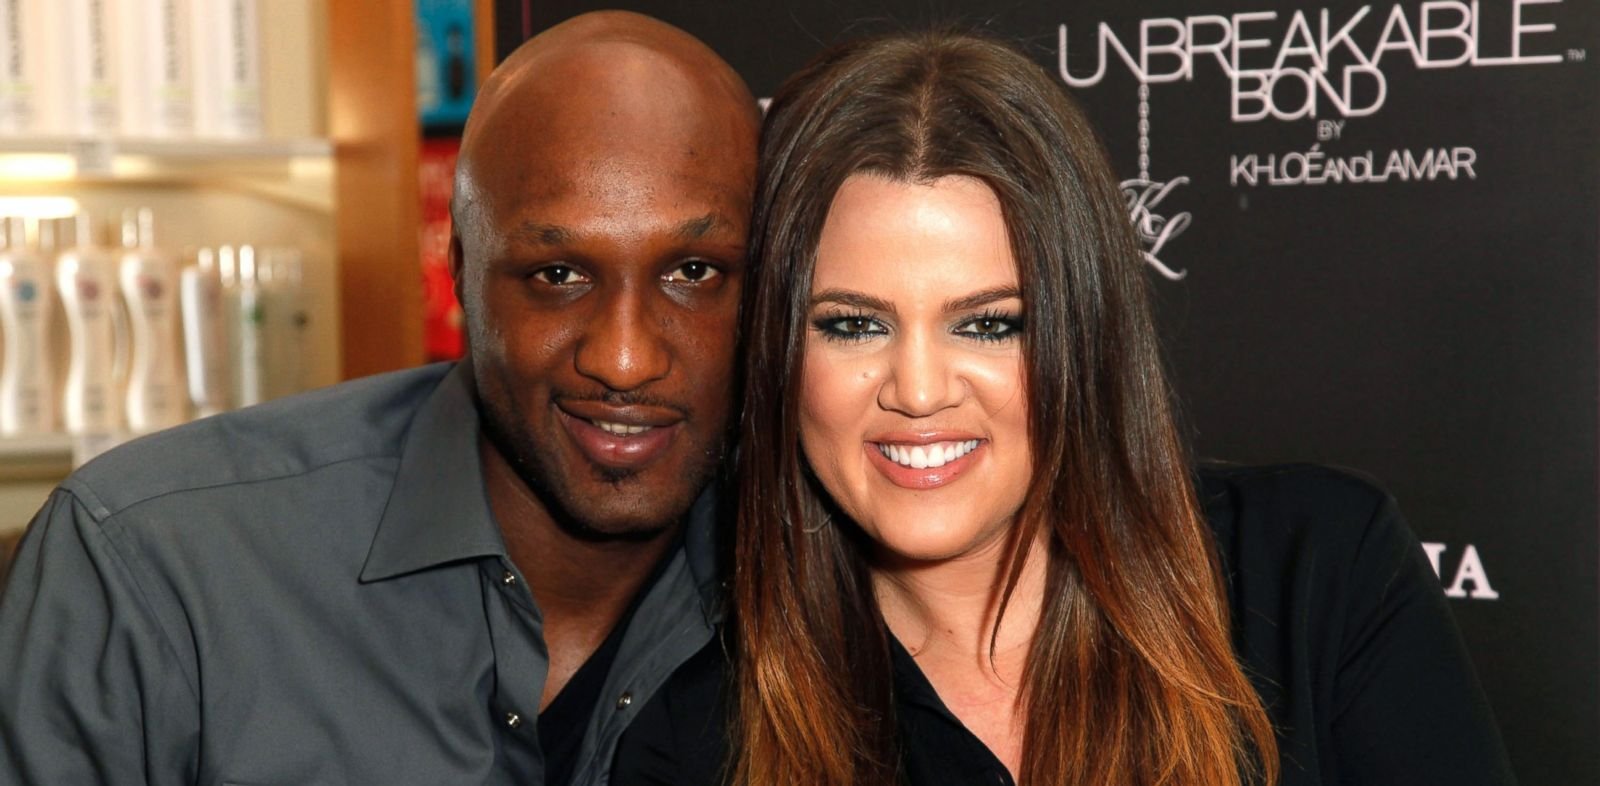 PHOTO: In this file photo, Lamar Odom and Khloe Kardashian make an appearance to promote their fragrance, Unbreakable Bond, at Perfumania in Orange, Calif., June 7, 2012.